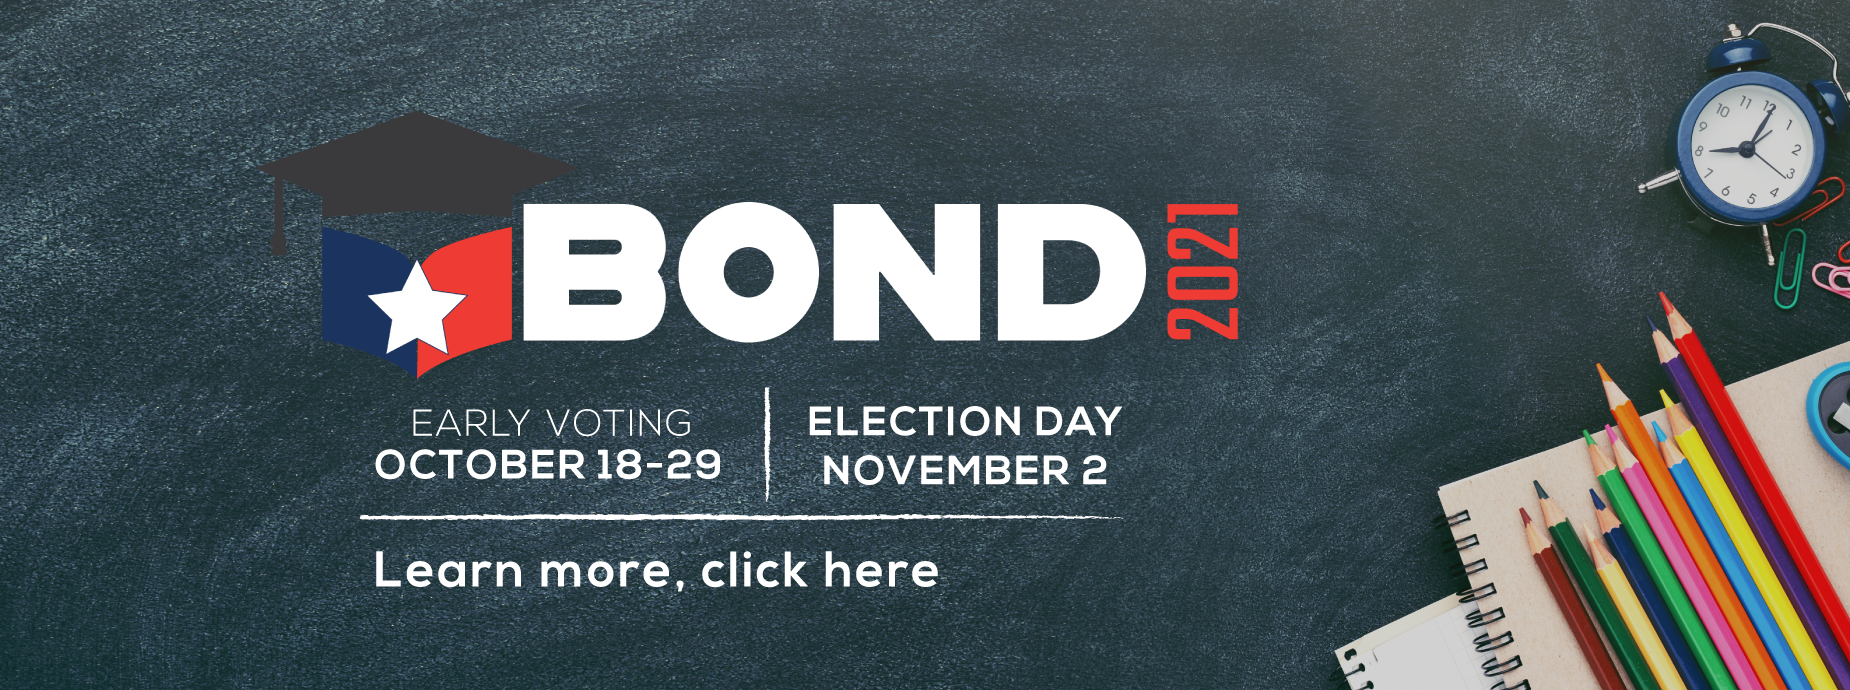 Bond Banner- Early Voting Oct. 21-29, Election Day Nov. 2